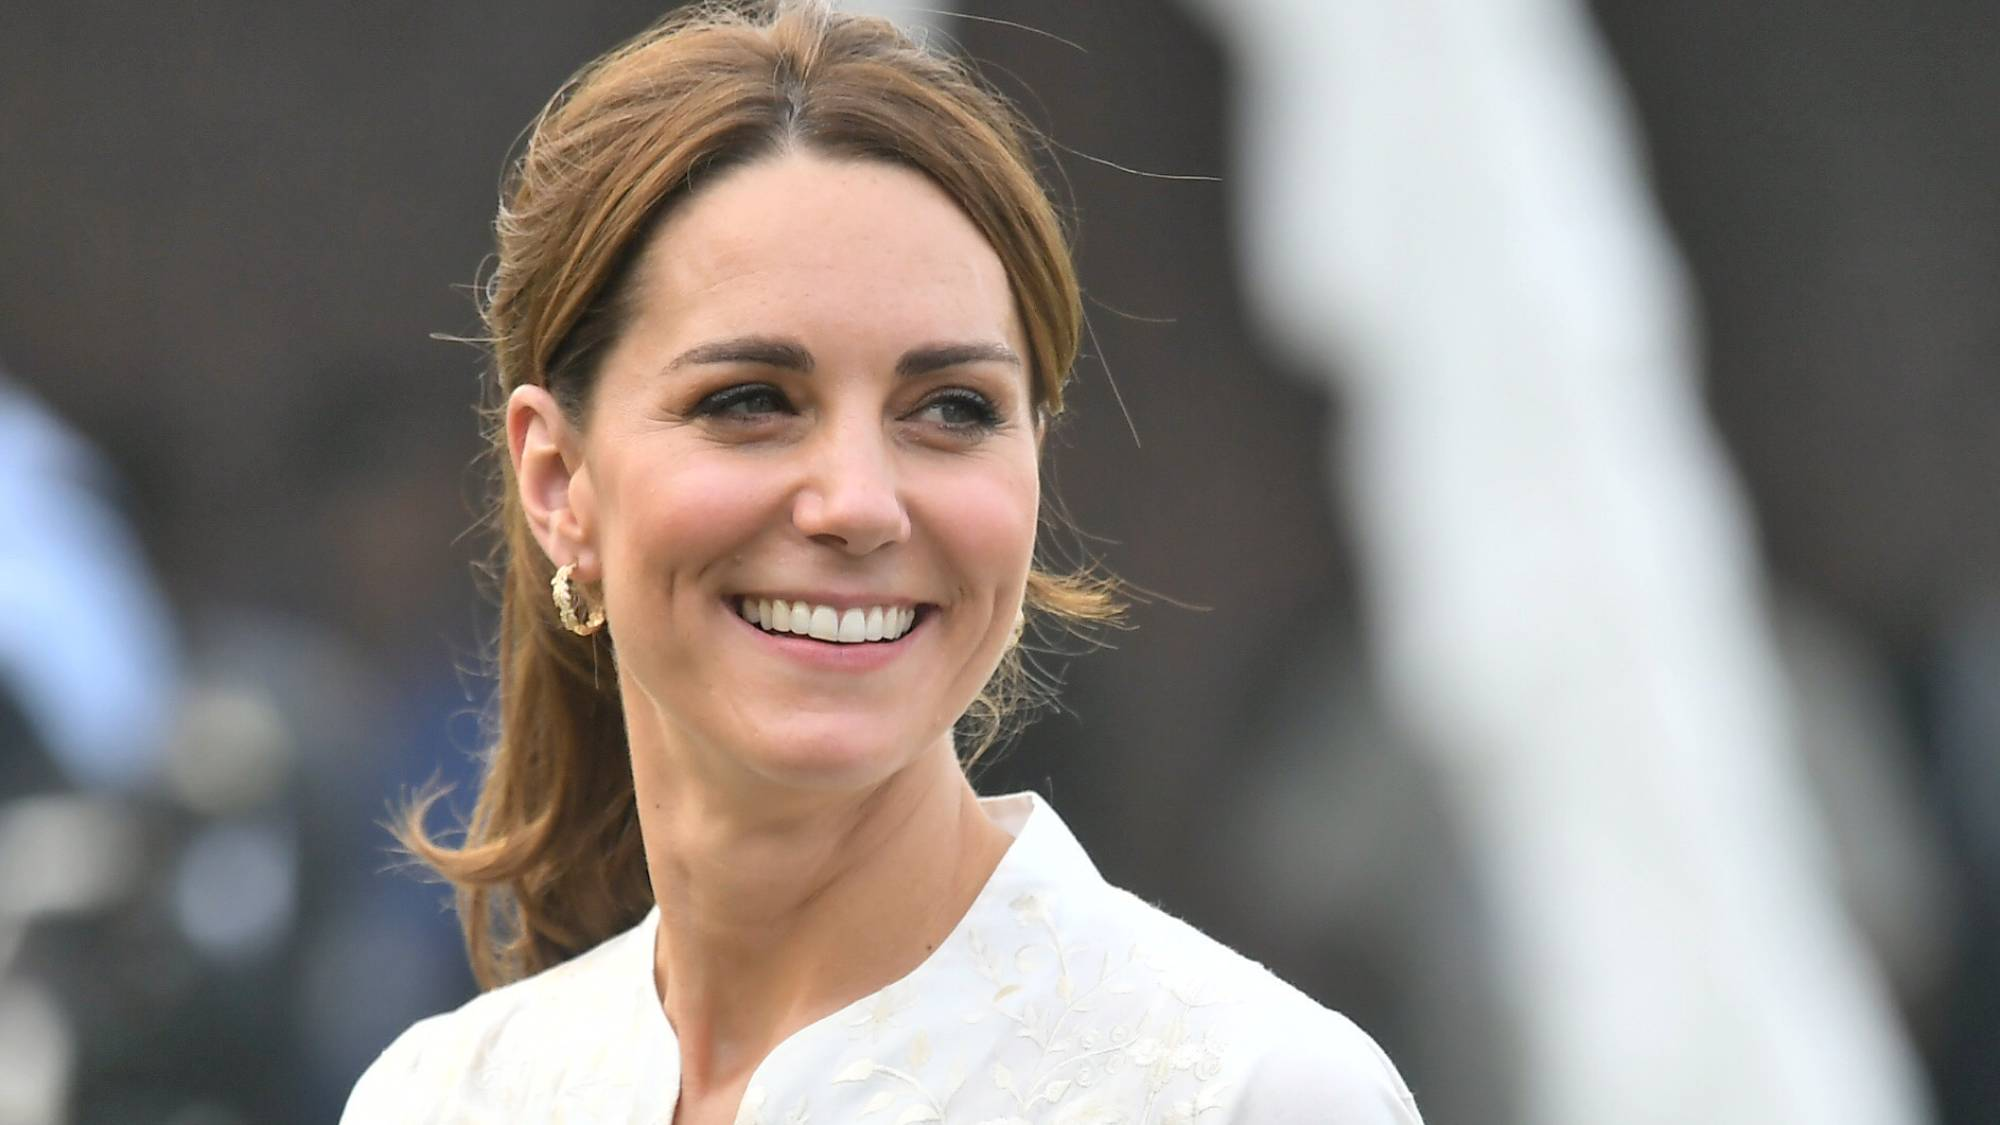 People are speculating that Kate Middleton is pregnant again